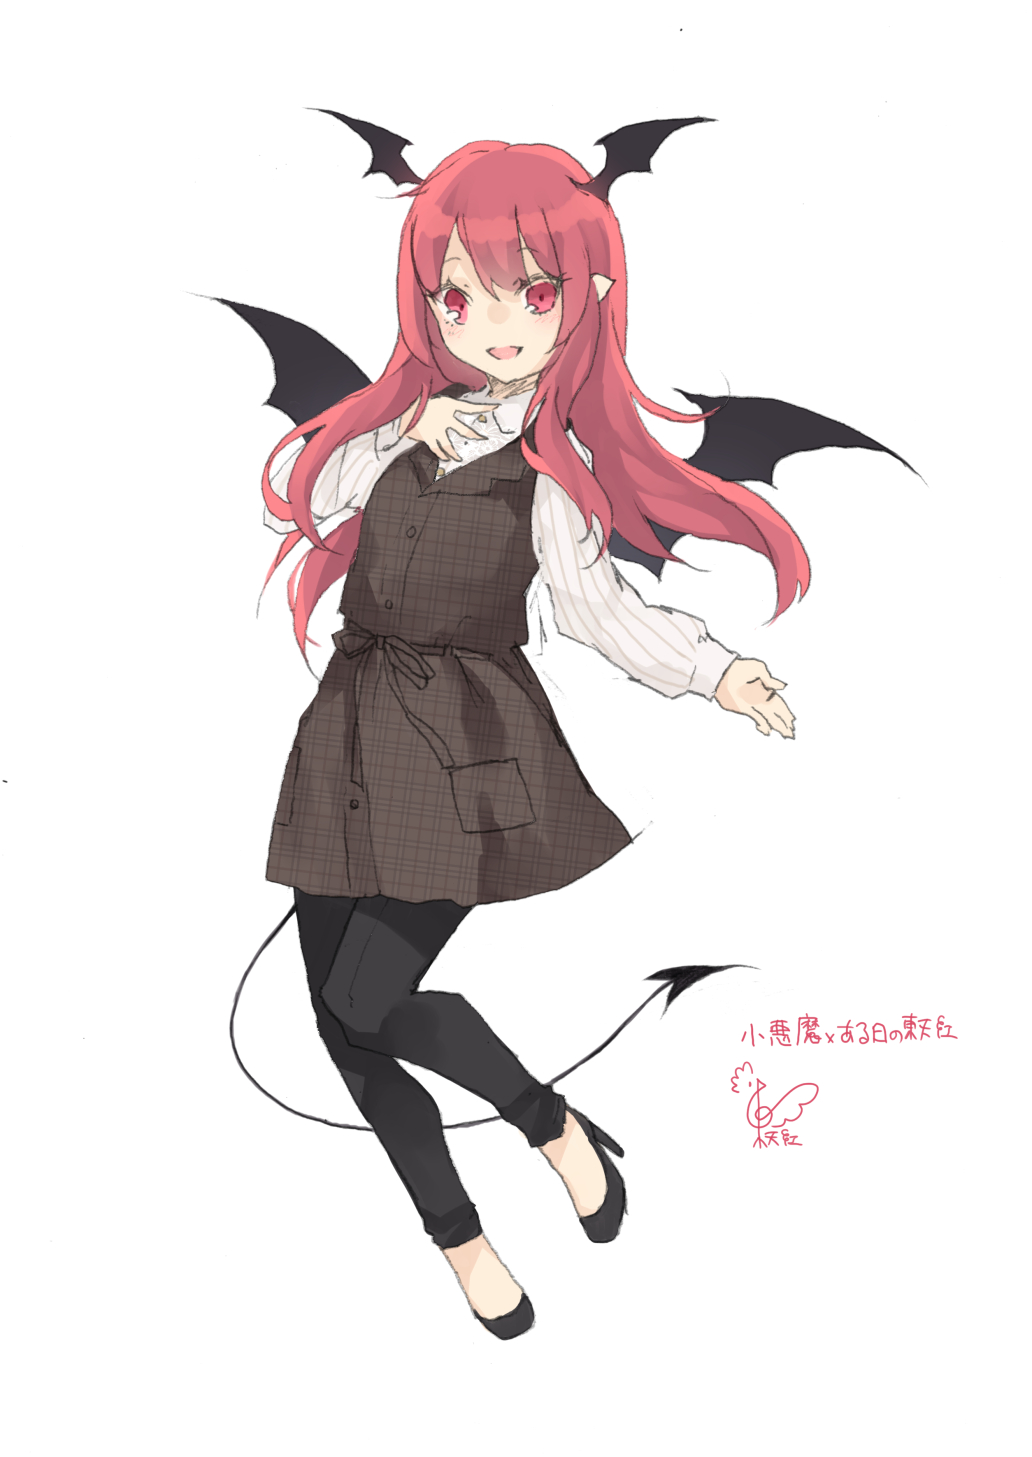 1girl :d adapted_costume bangs black_dress black_footwear black_pants black_sash blush commentary_request demon_tail demon_wings dress eyebrows_visible_through_hair full_body hand_on_own_chest head_wings high_heels highres koakuma leggings long_hair long_sleeves looking_at_viewer open_mouth pants plaid plaid_dress pocket pointy_ears red_eyes redhead sash shirt signature smile solo tail touhou toutenkou translation_request unmoving_pattern white_shirt wings